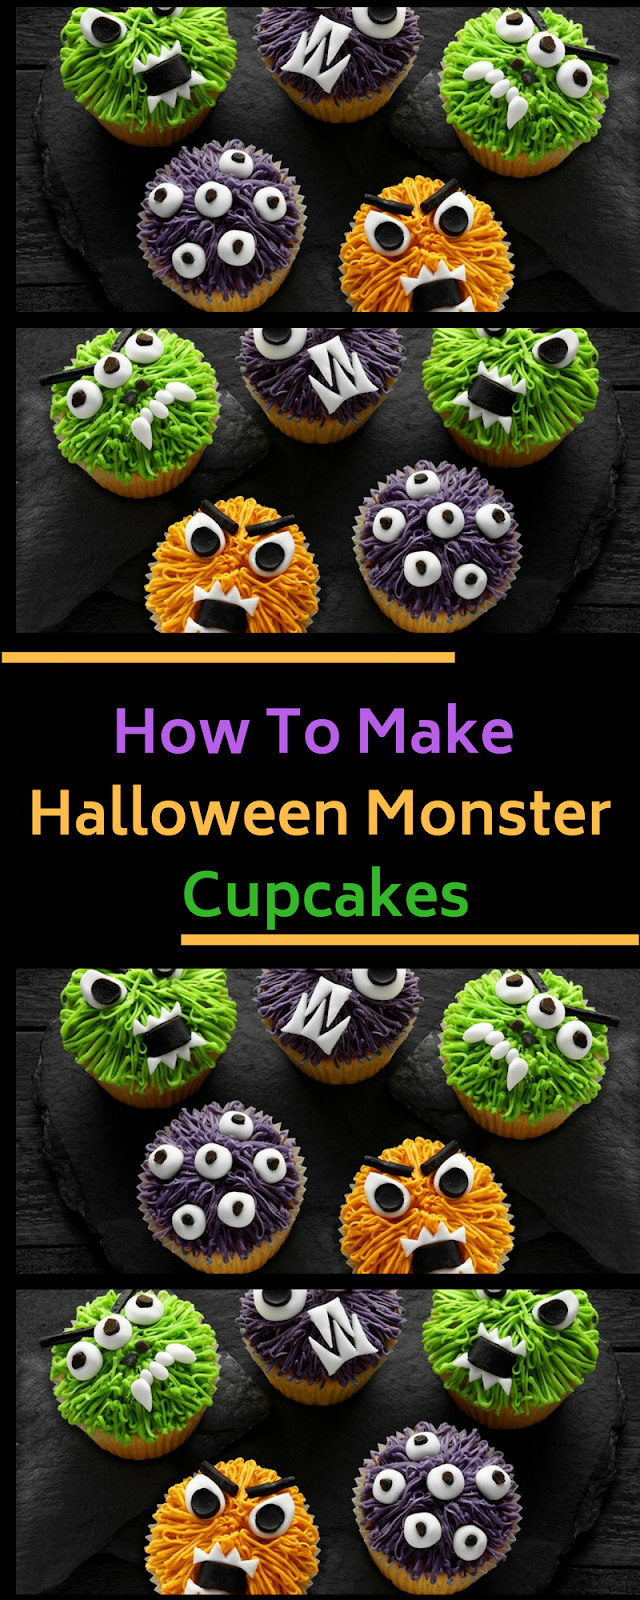 How To Make Halloween Monster Cupcakes